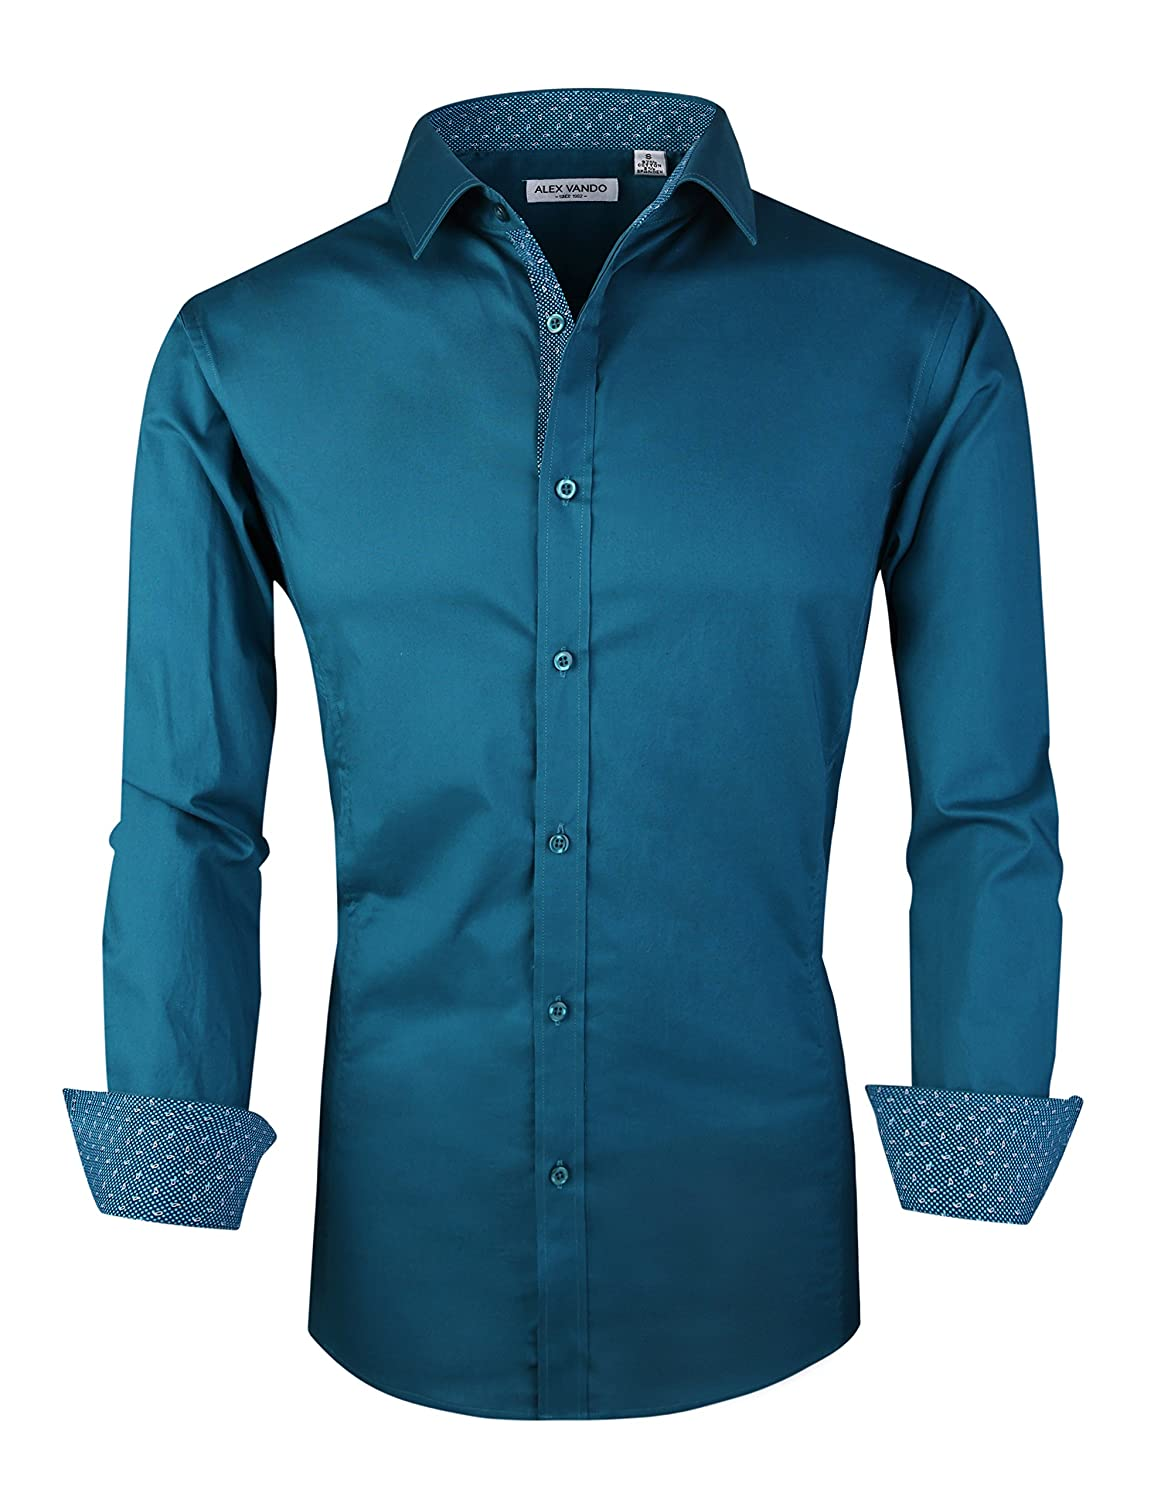 e42323d6fdb Casual Button-Down Shirts : Online Shopping for Clothing, Shoes ...